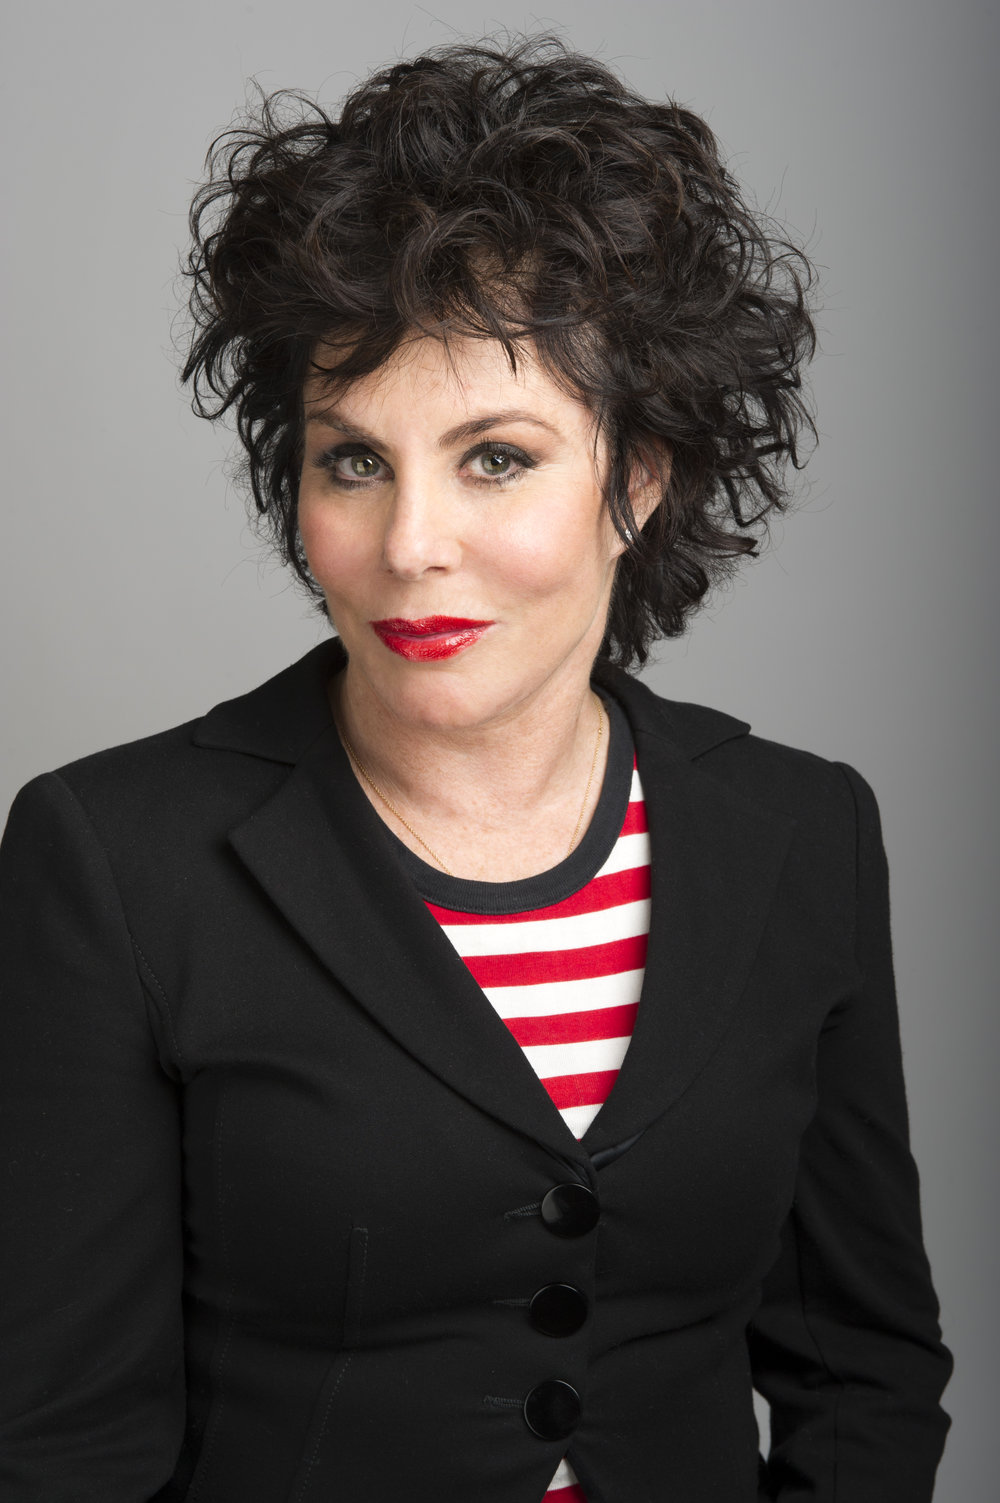 Ruby Wax author photo hi res credit Steve Ullathorne.jpg